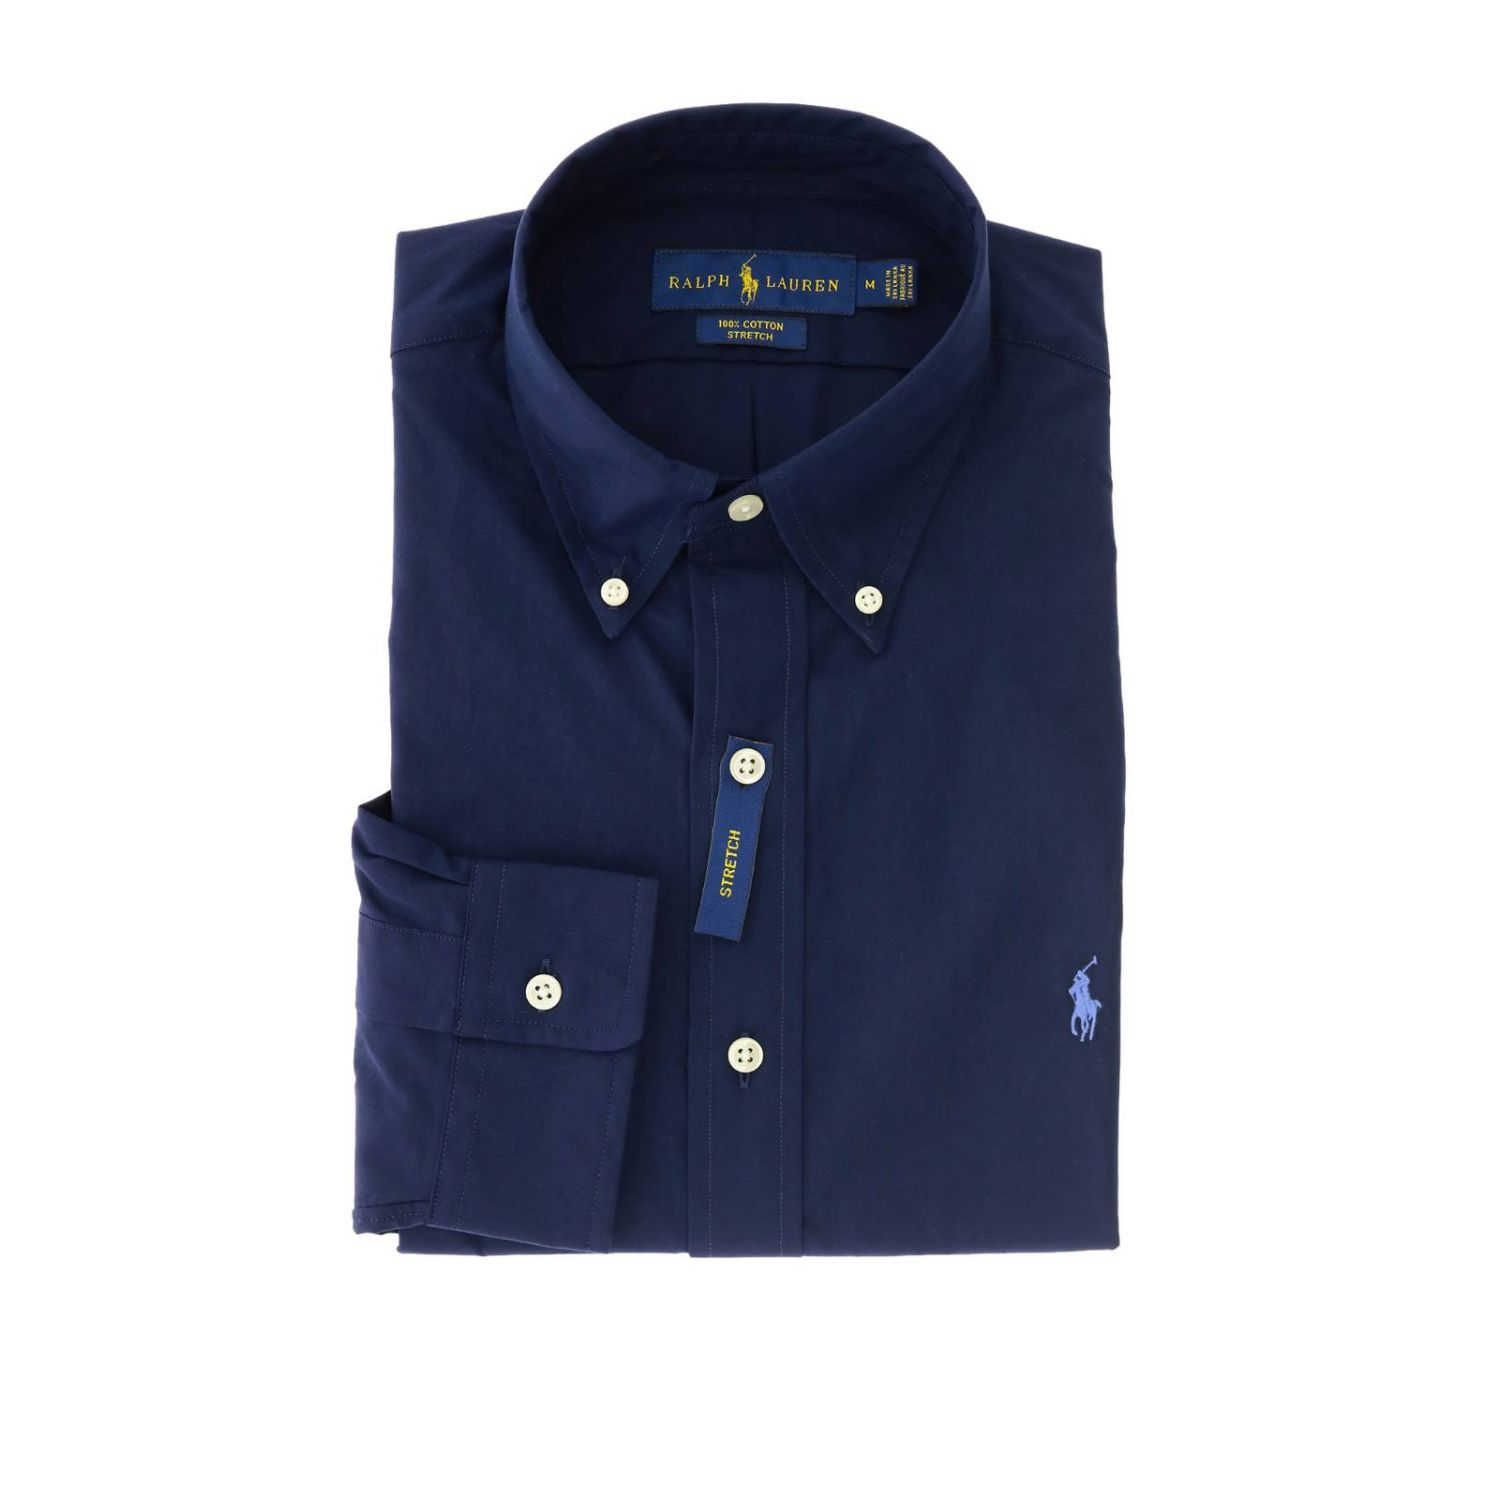 Camisa slim fit natural stretch con cuello abotonado y logo de Polo Ralph Lauren azul oscuro 1